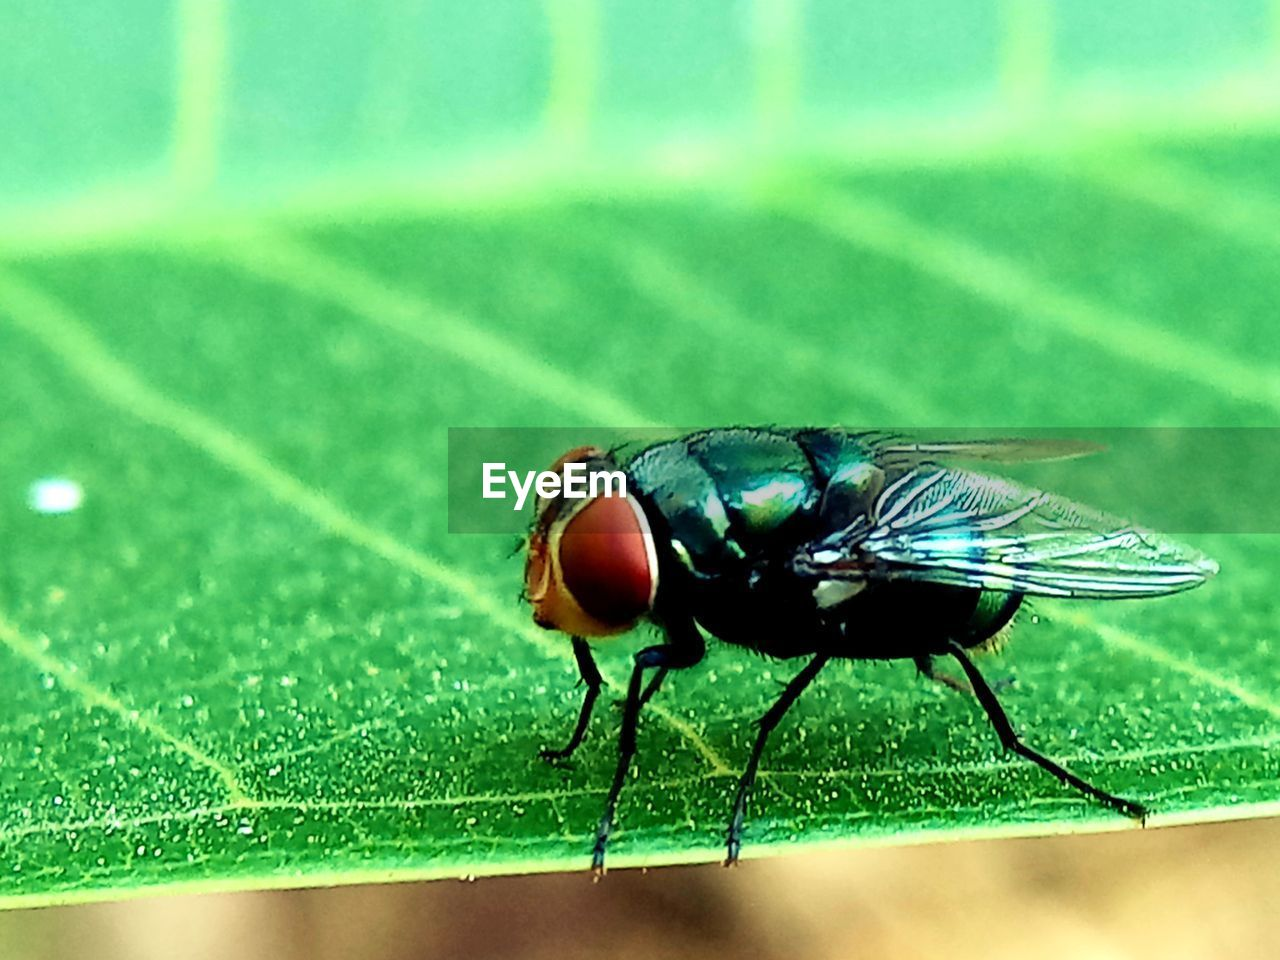 insect, invertebrate, animal, animals in the wild, animal themes, animal wildlife, one animal, close-up, green color, leaf, plant part, fly, focus on foreground, nature, day, animal wing, no people, housefly, zoology, outdoors, animal eye